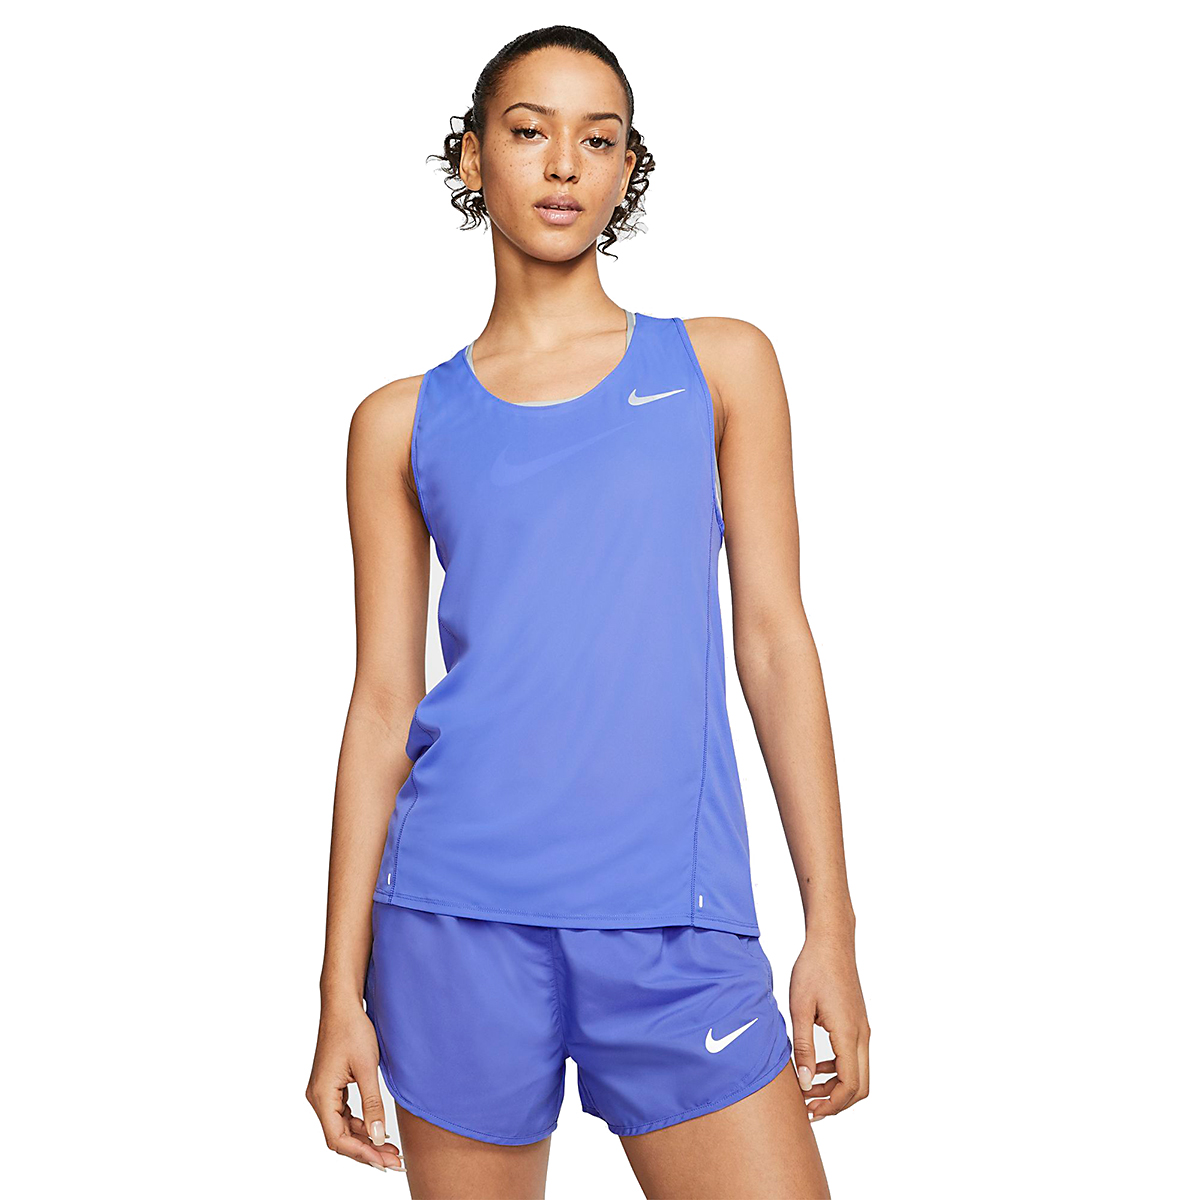 Women's Nike City Sleek Running Tank - Color: Sapphire - Size: XS, Sapphire, large, image 1